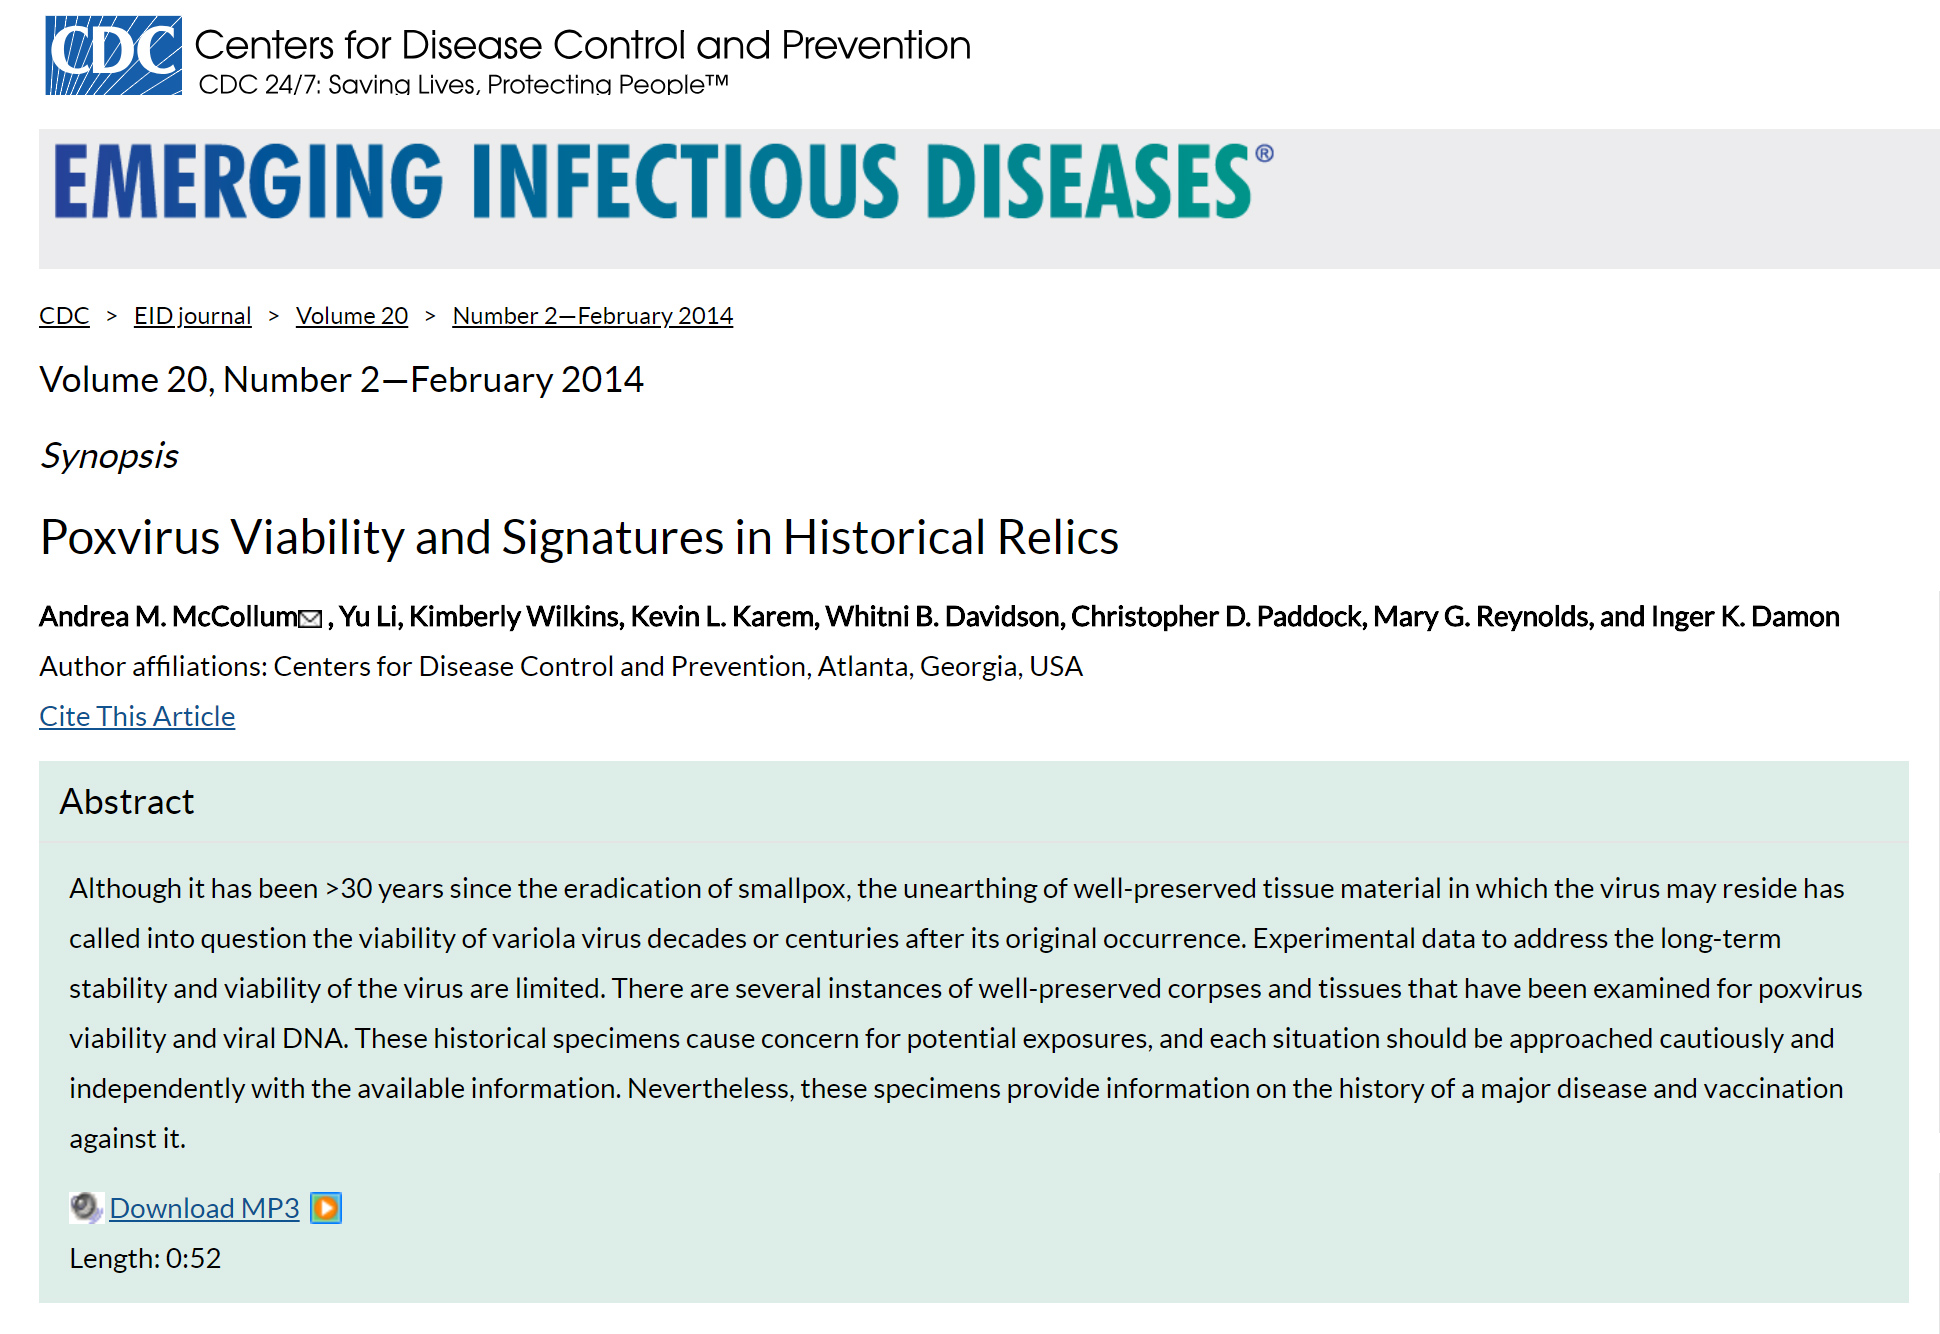 Research included in academic publication & presented at CDC